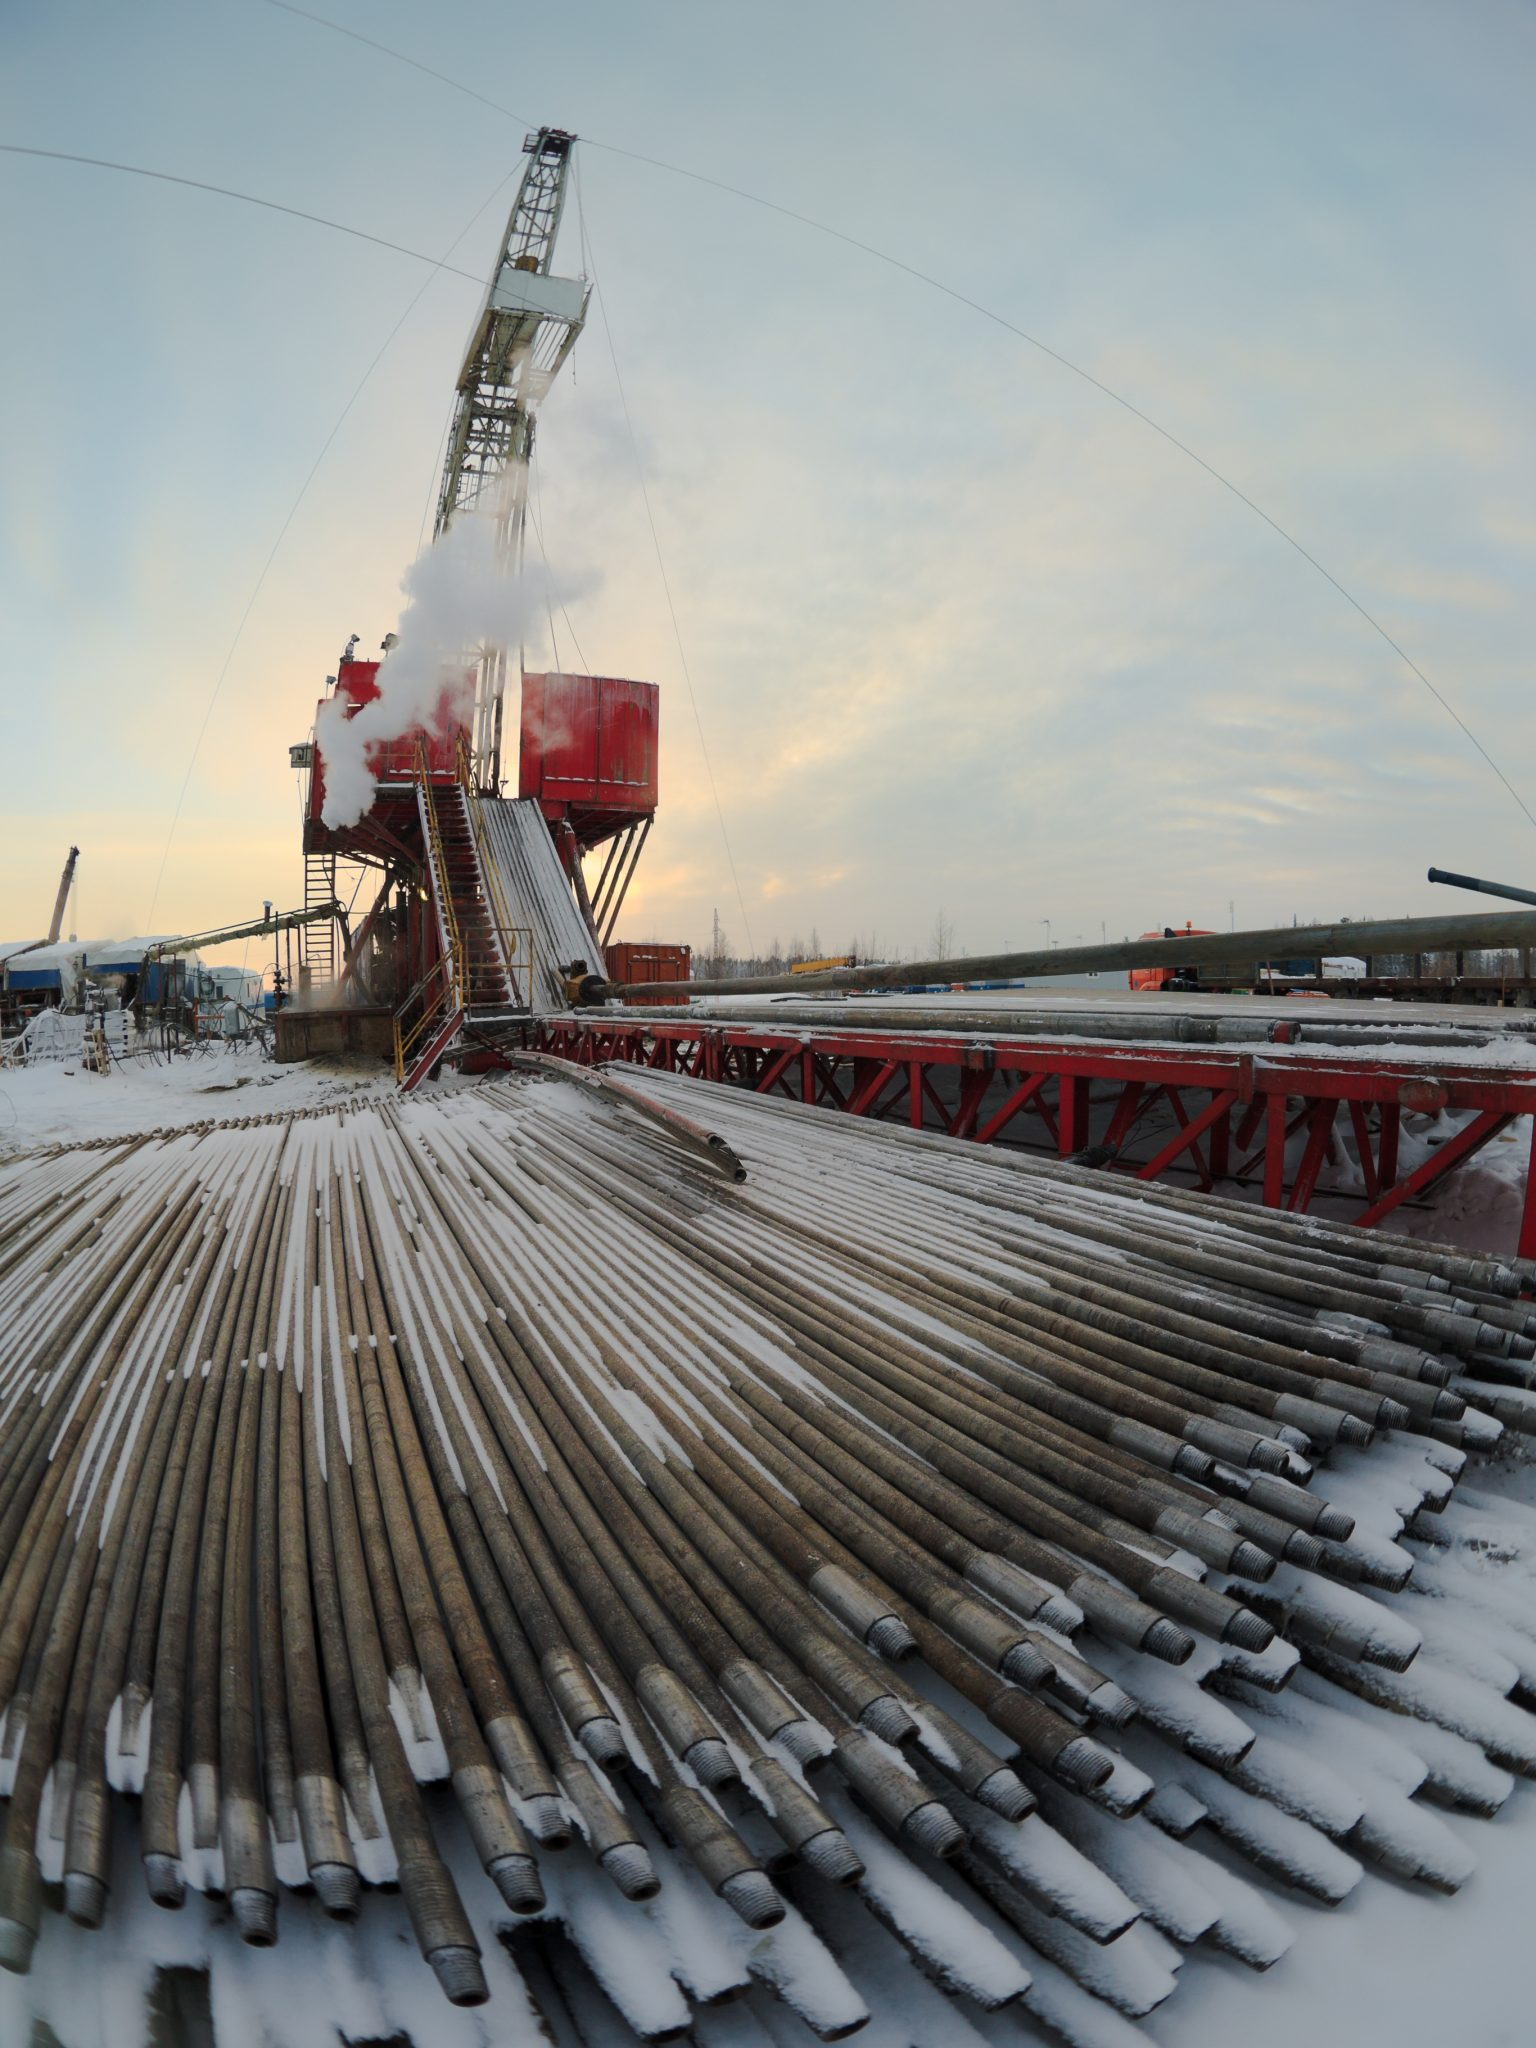 Oil Rig And Pipes In Frosty Cold Weather